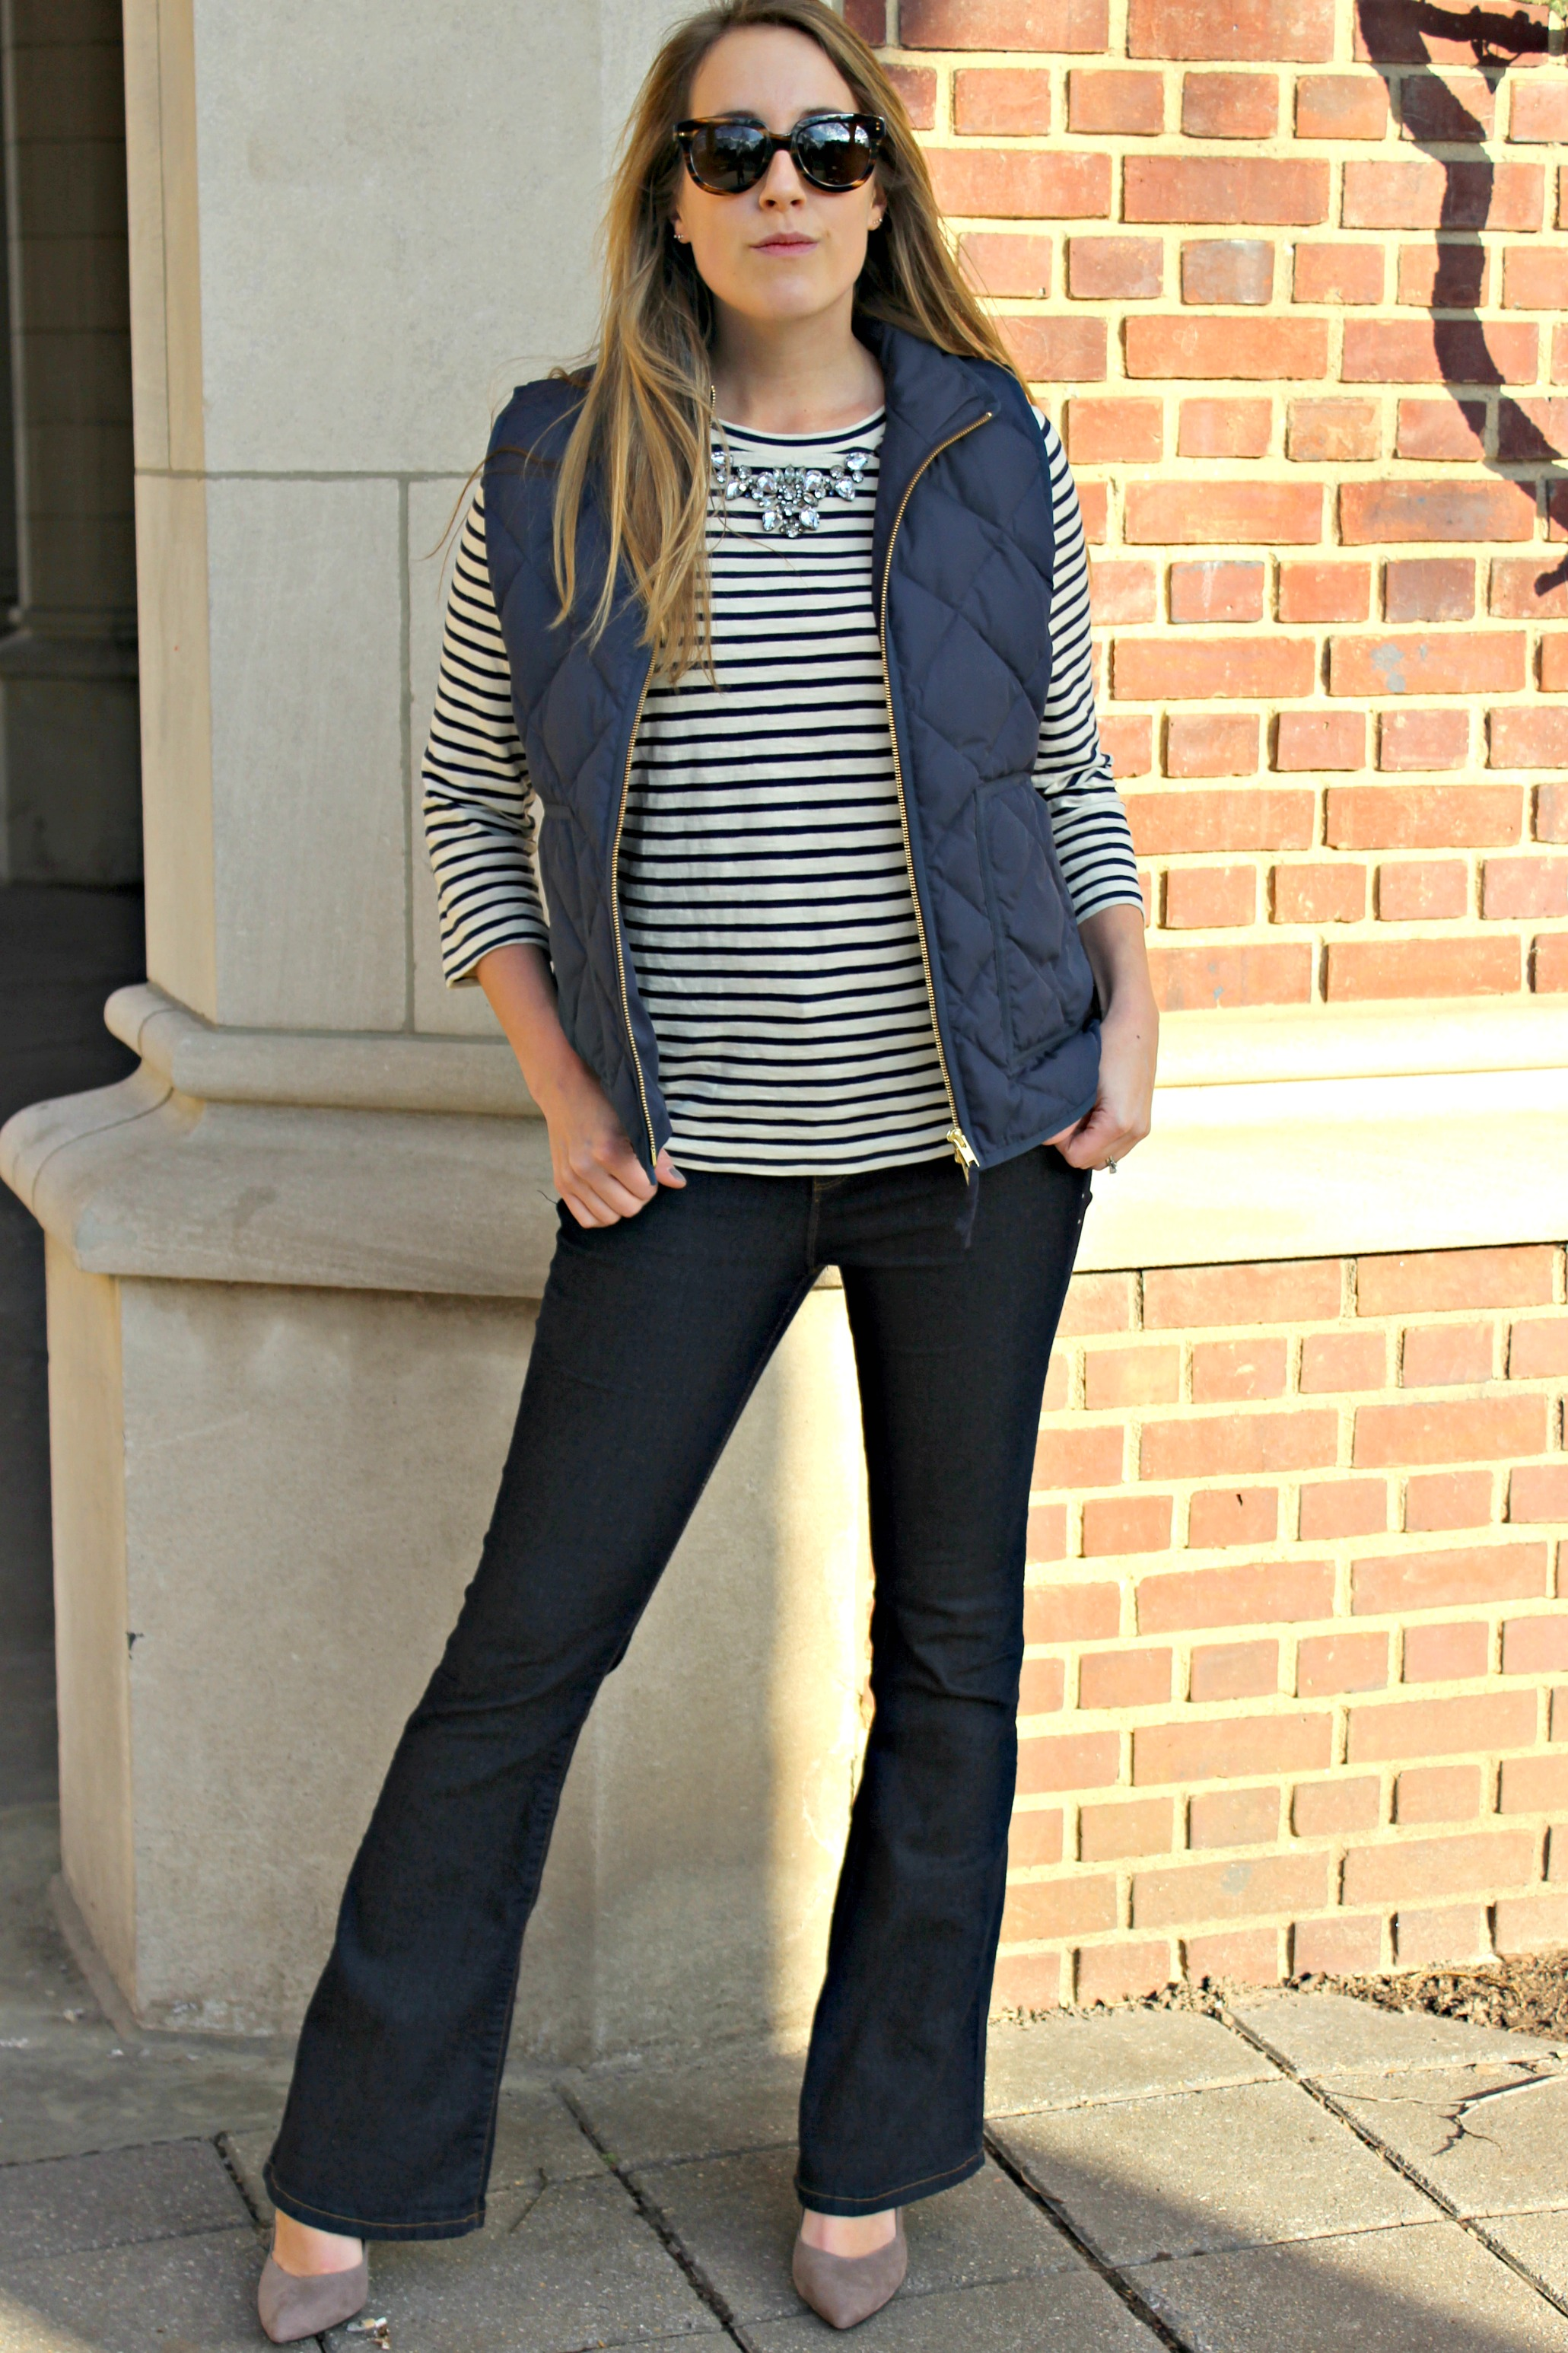 Wearing: Sparkle and Stripe